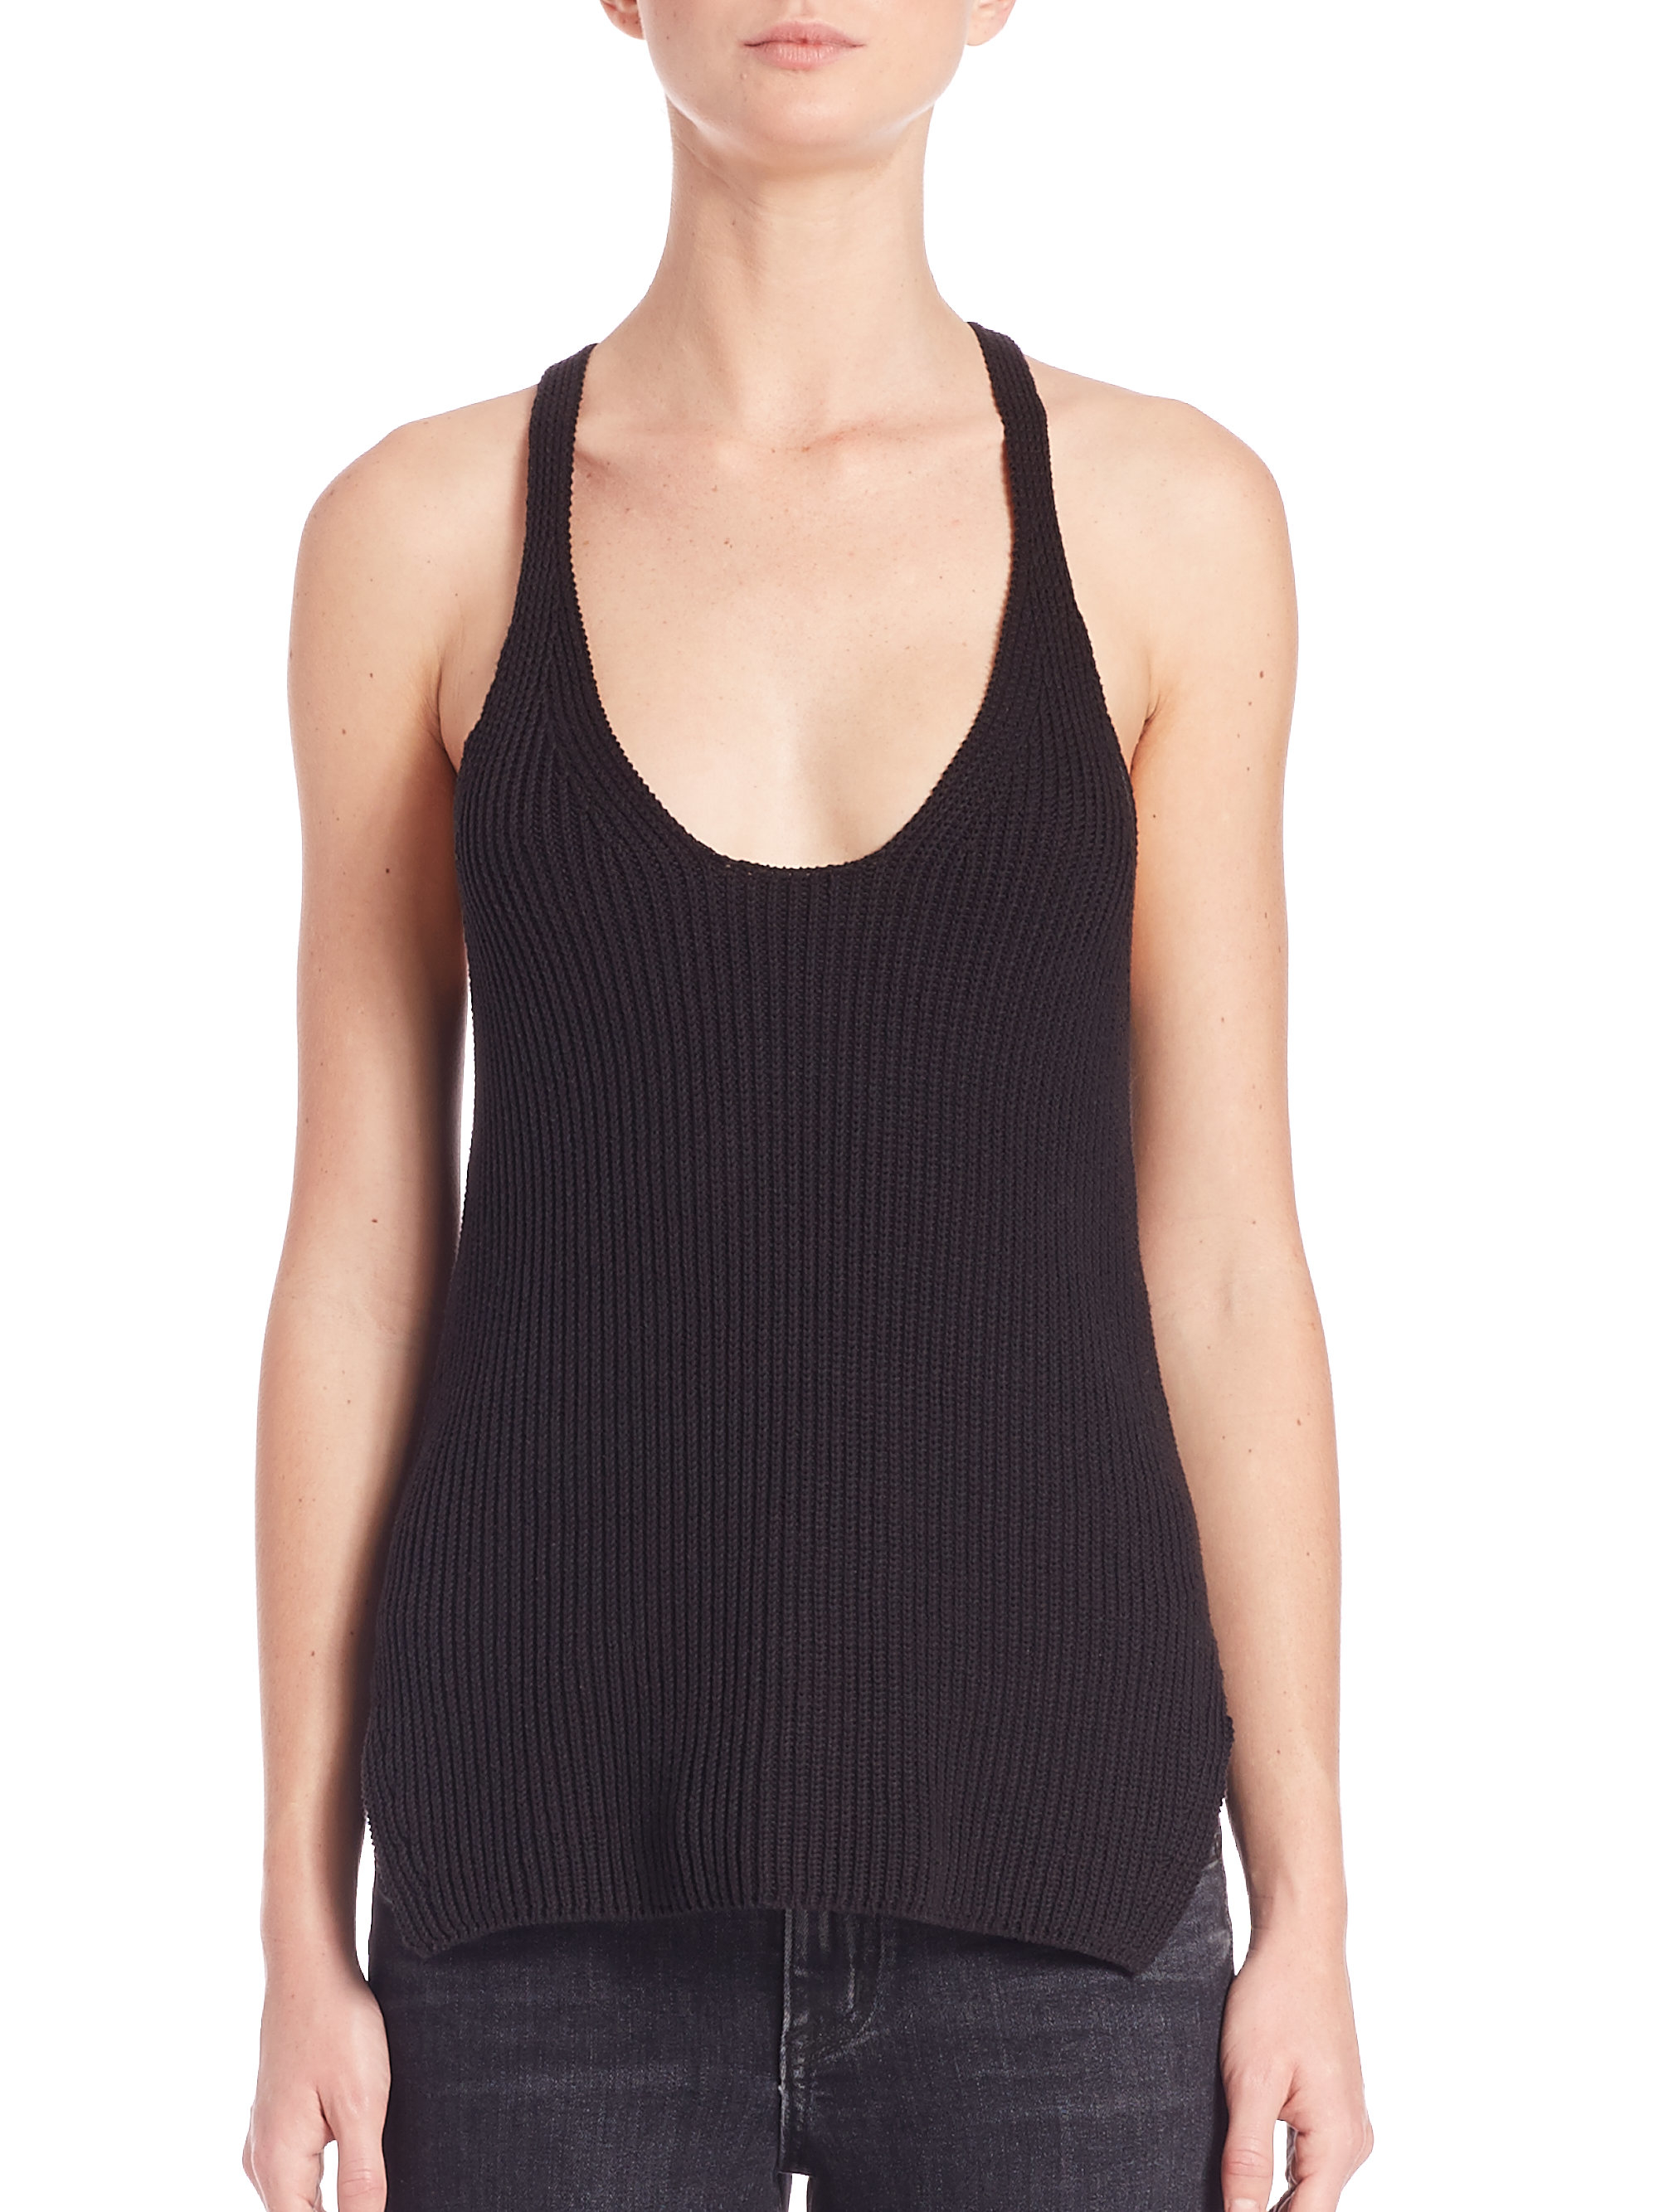 ribbed tank top - Black Helmut Lang Get The Latest Fashion Outlet With Credit Card Affordable Free Shipping Shopping Online 5hmrPyT